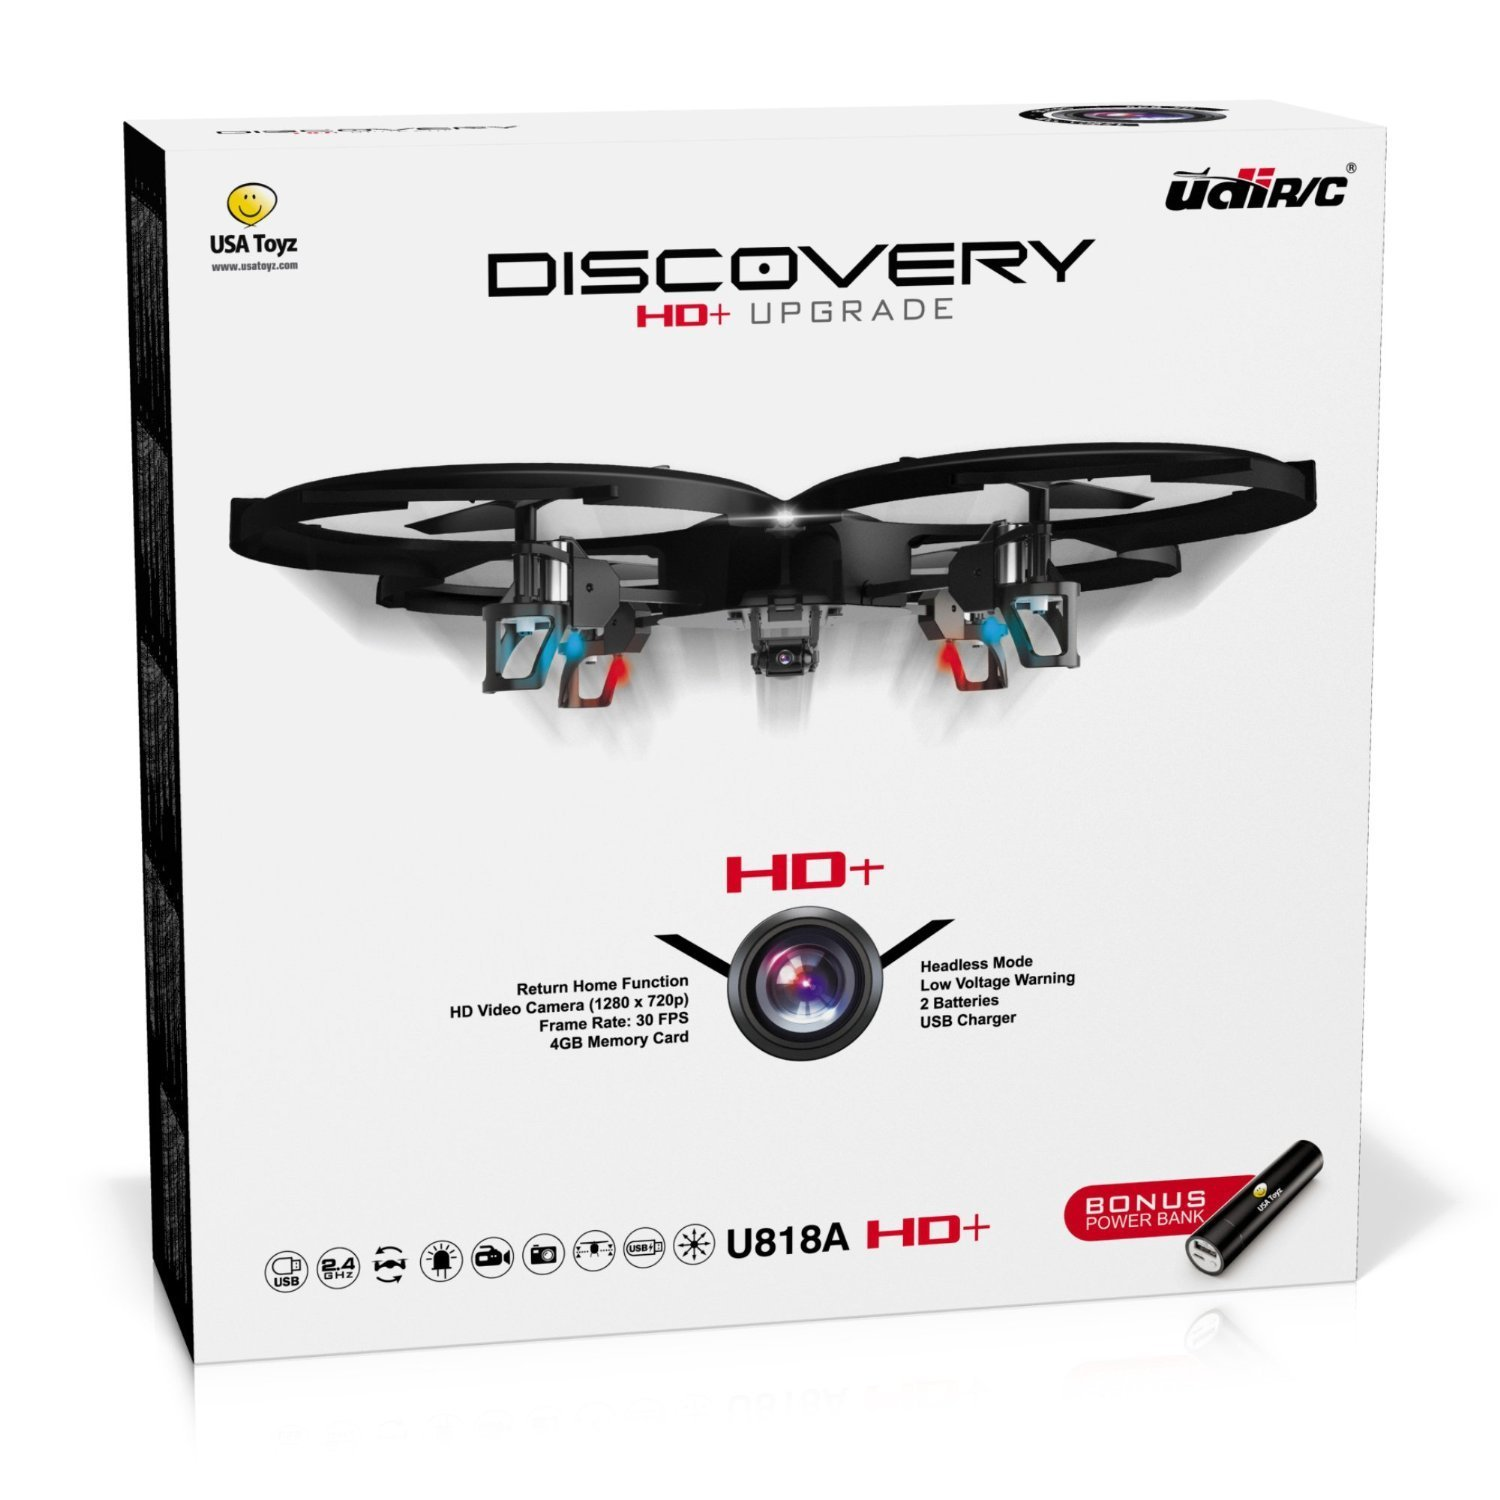 71NqzMbnDZL. SL1500  - *Latest UDI 818A HD+ RC Quadcopter Drone with HD Camera, Return Home Function and Headless Mode* 2.4GHz 4 CH 6 Axis Gyro RTF Includes BONUS BATTERY + POWER BANK (*Quadruples Flying Time*) - USA TOYZ EXCLUSIVE!!